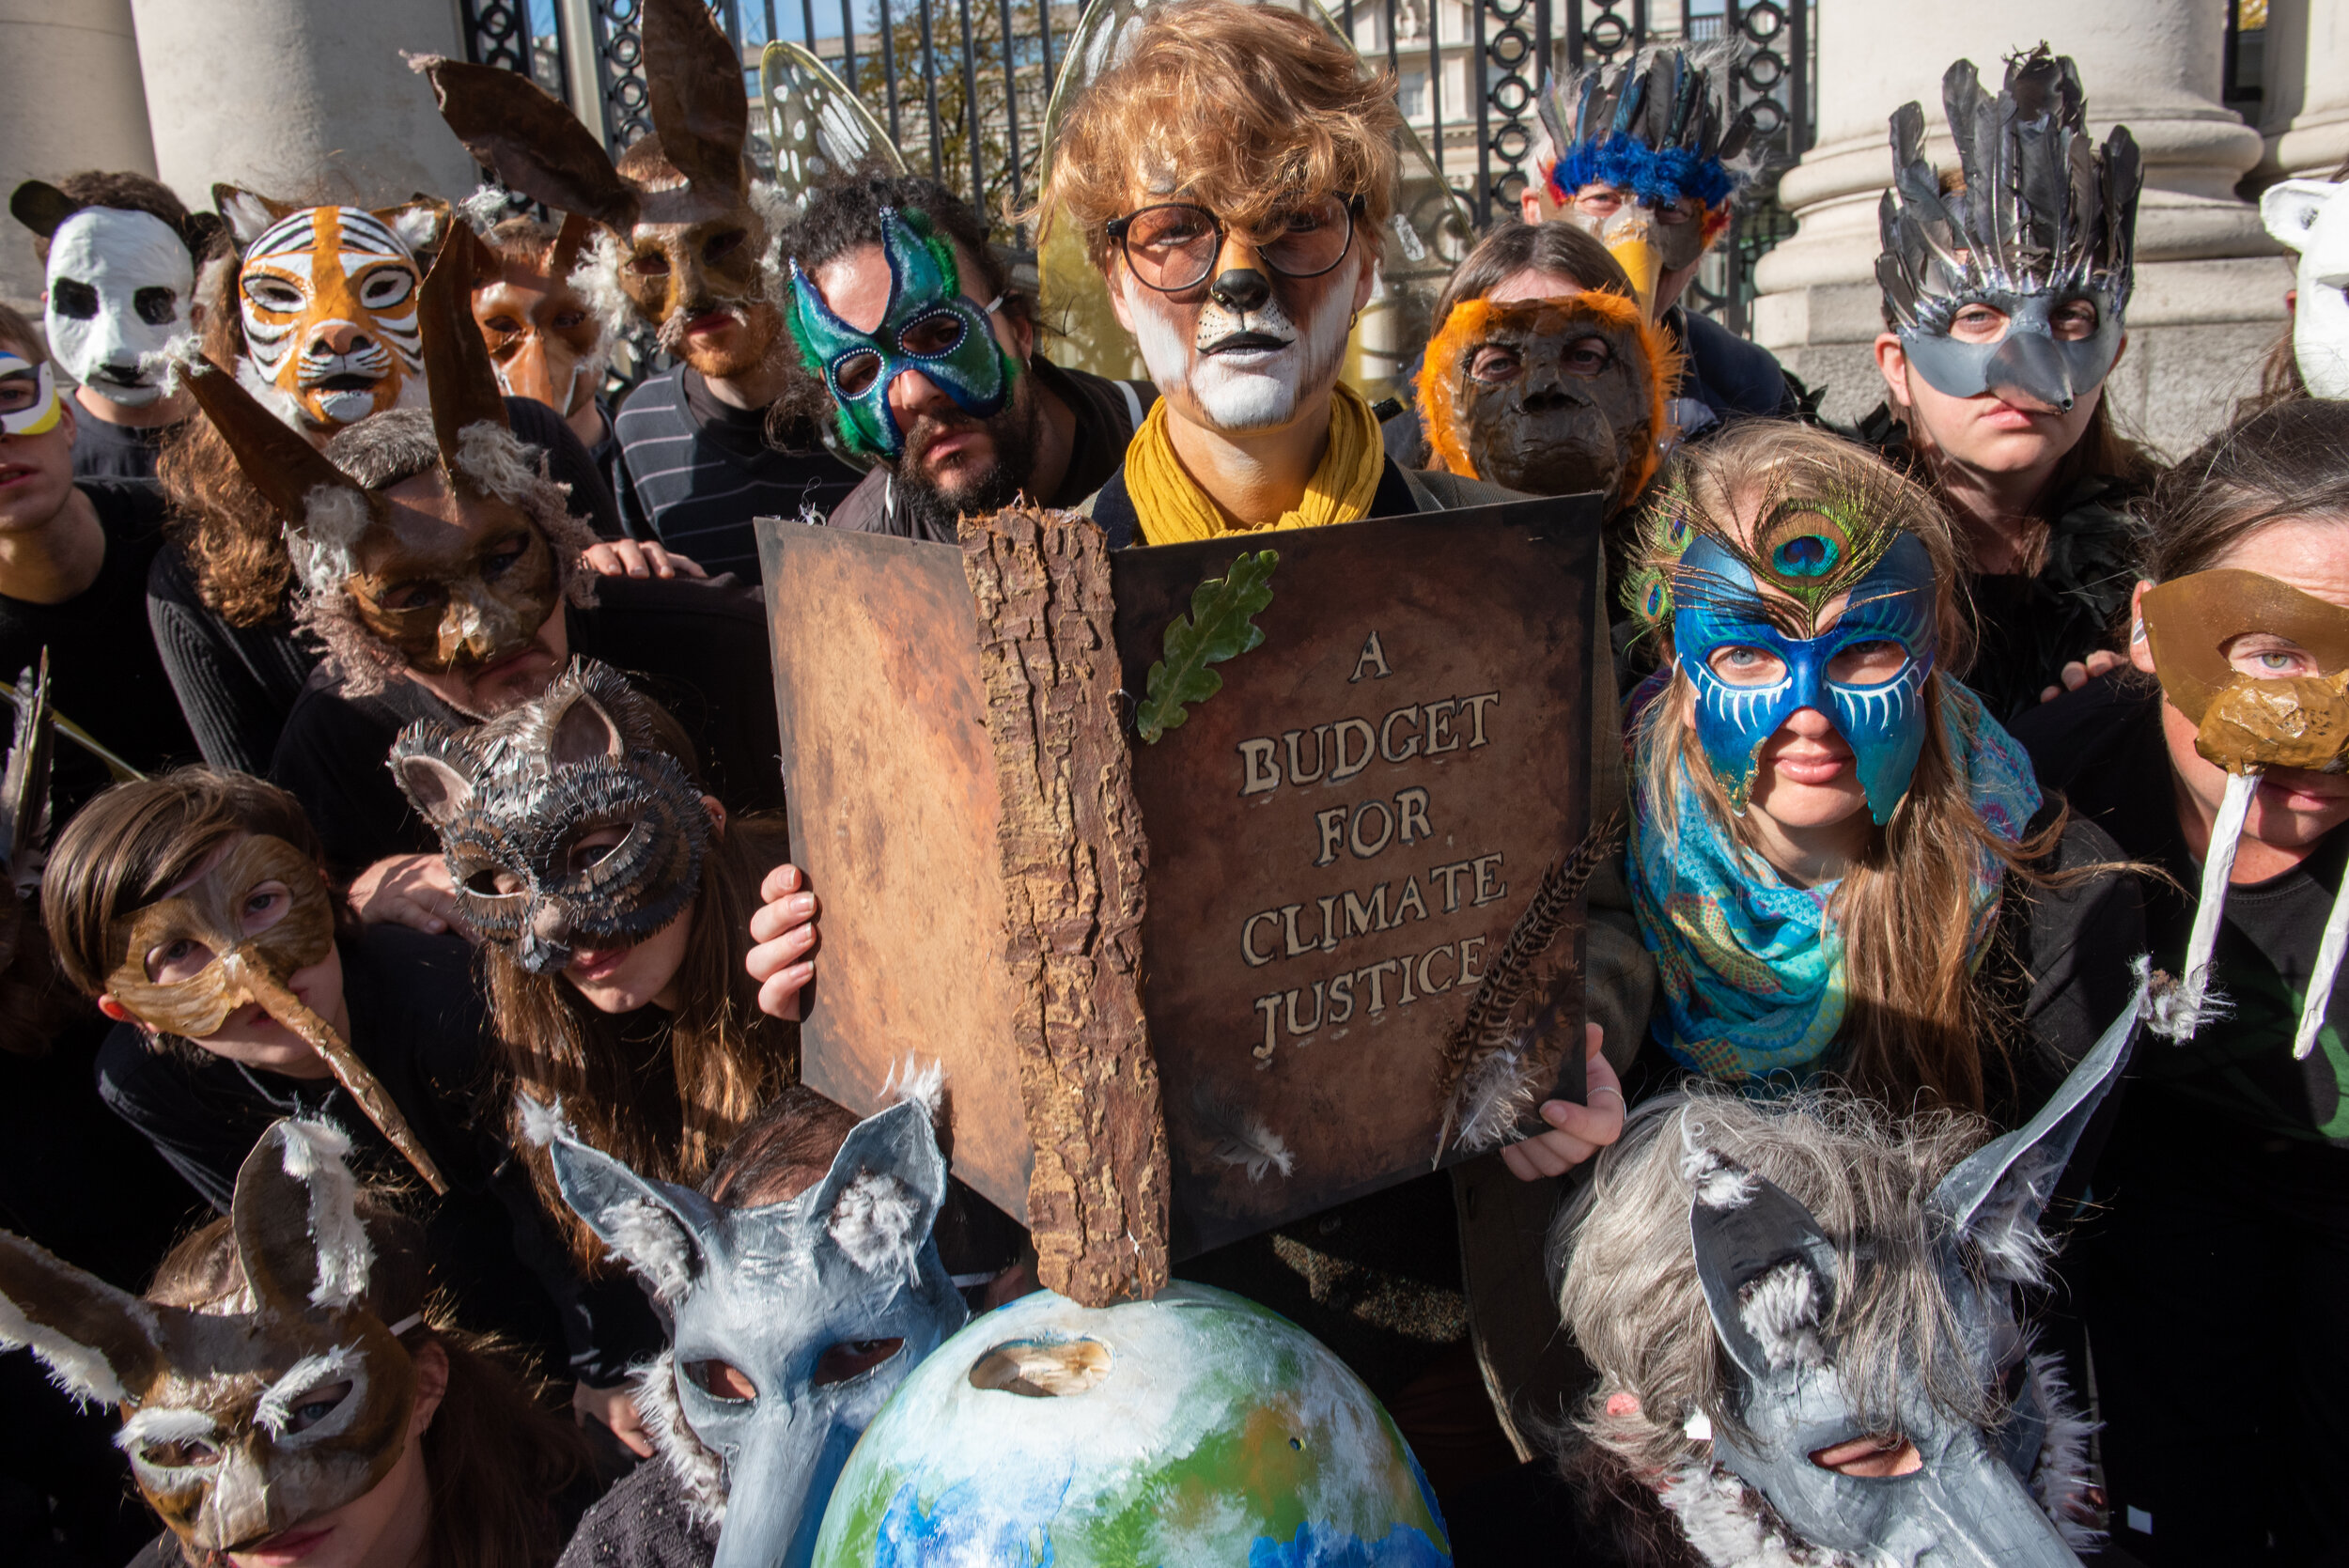 Extinction Rebellion delivers it's 'Budget for Climate Justice' to Leinster House on Budget Day 2019